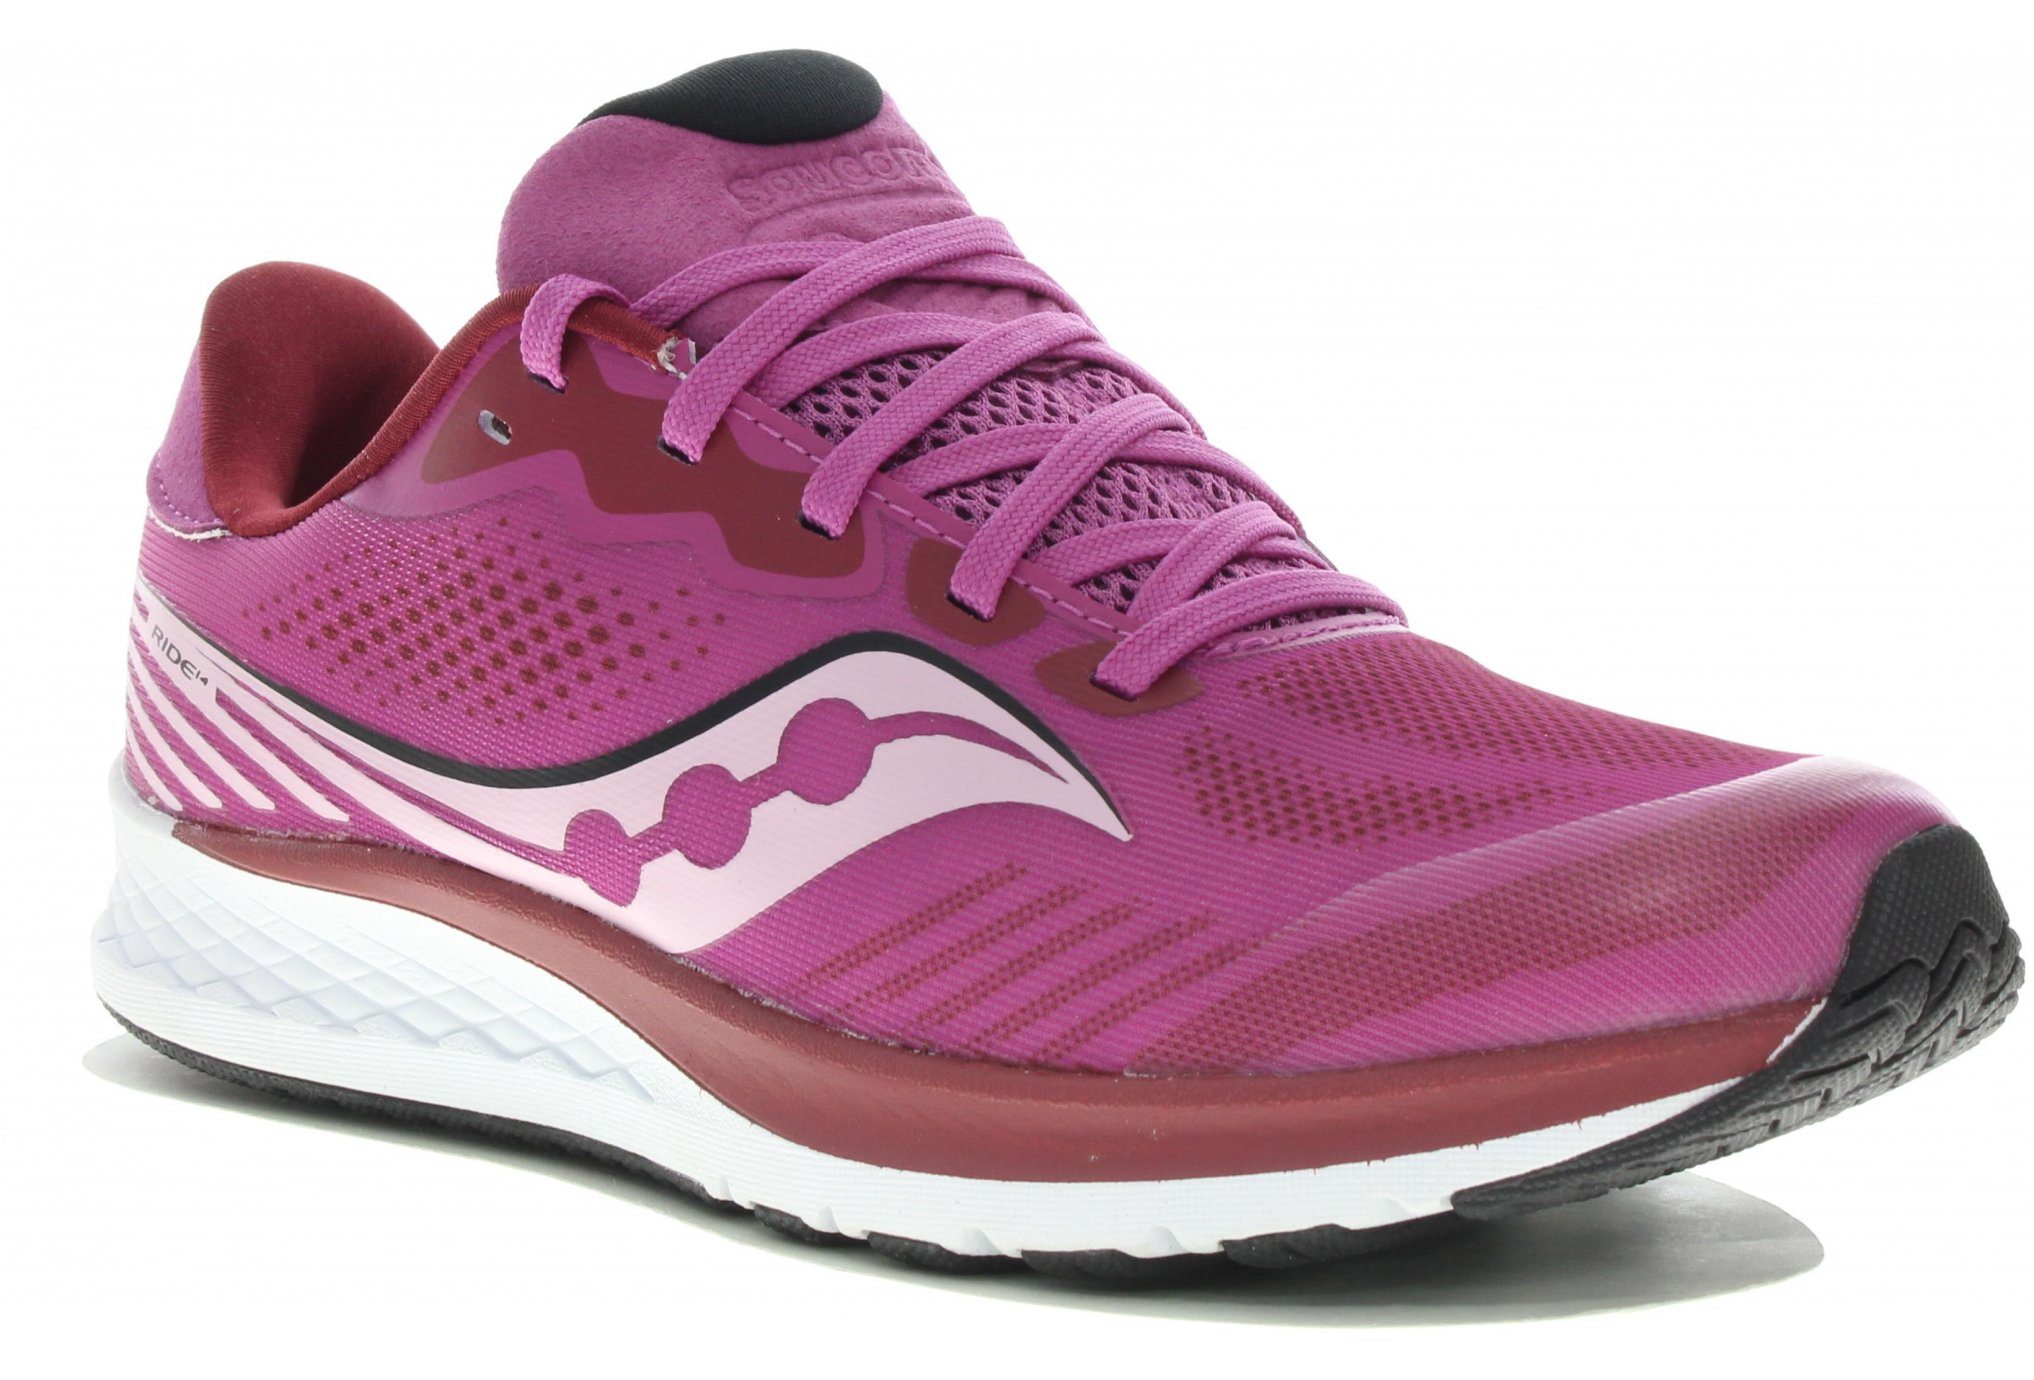 Saucony Ride 14 Fille Chaussures running femme